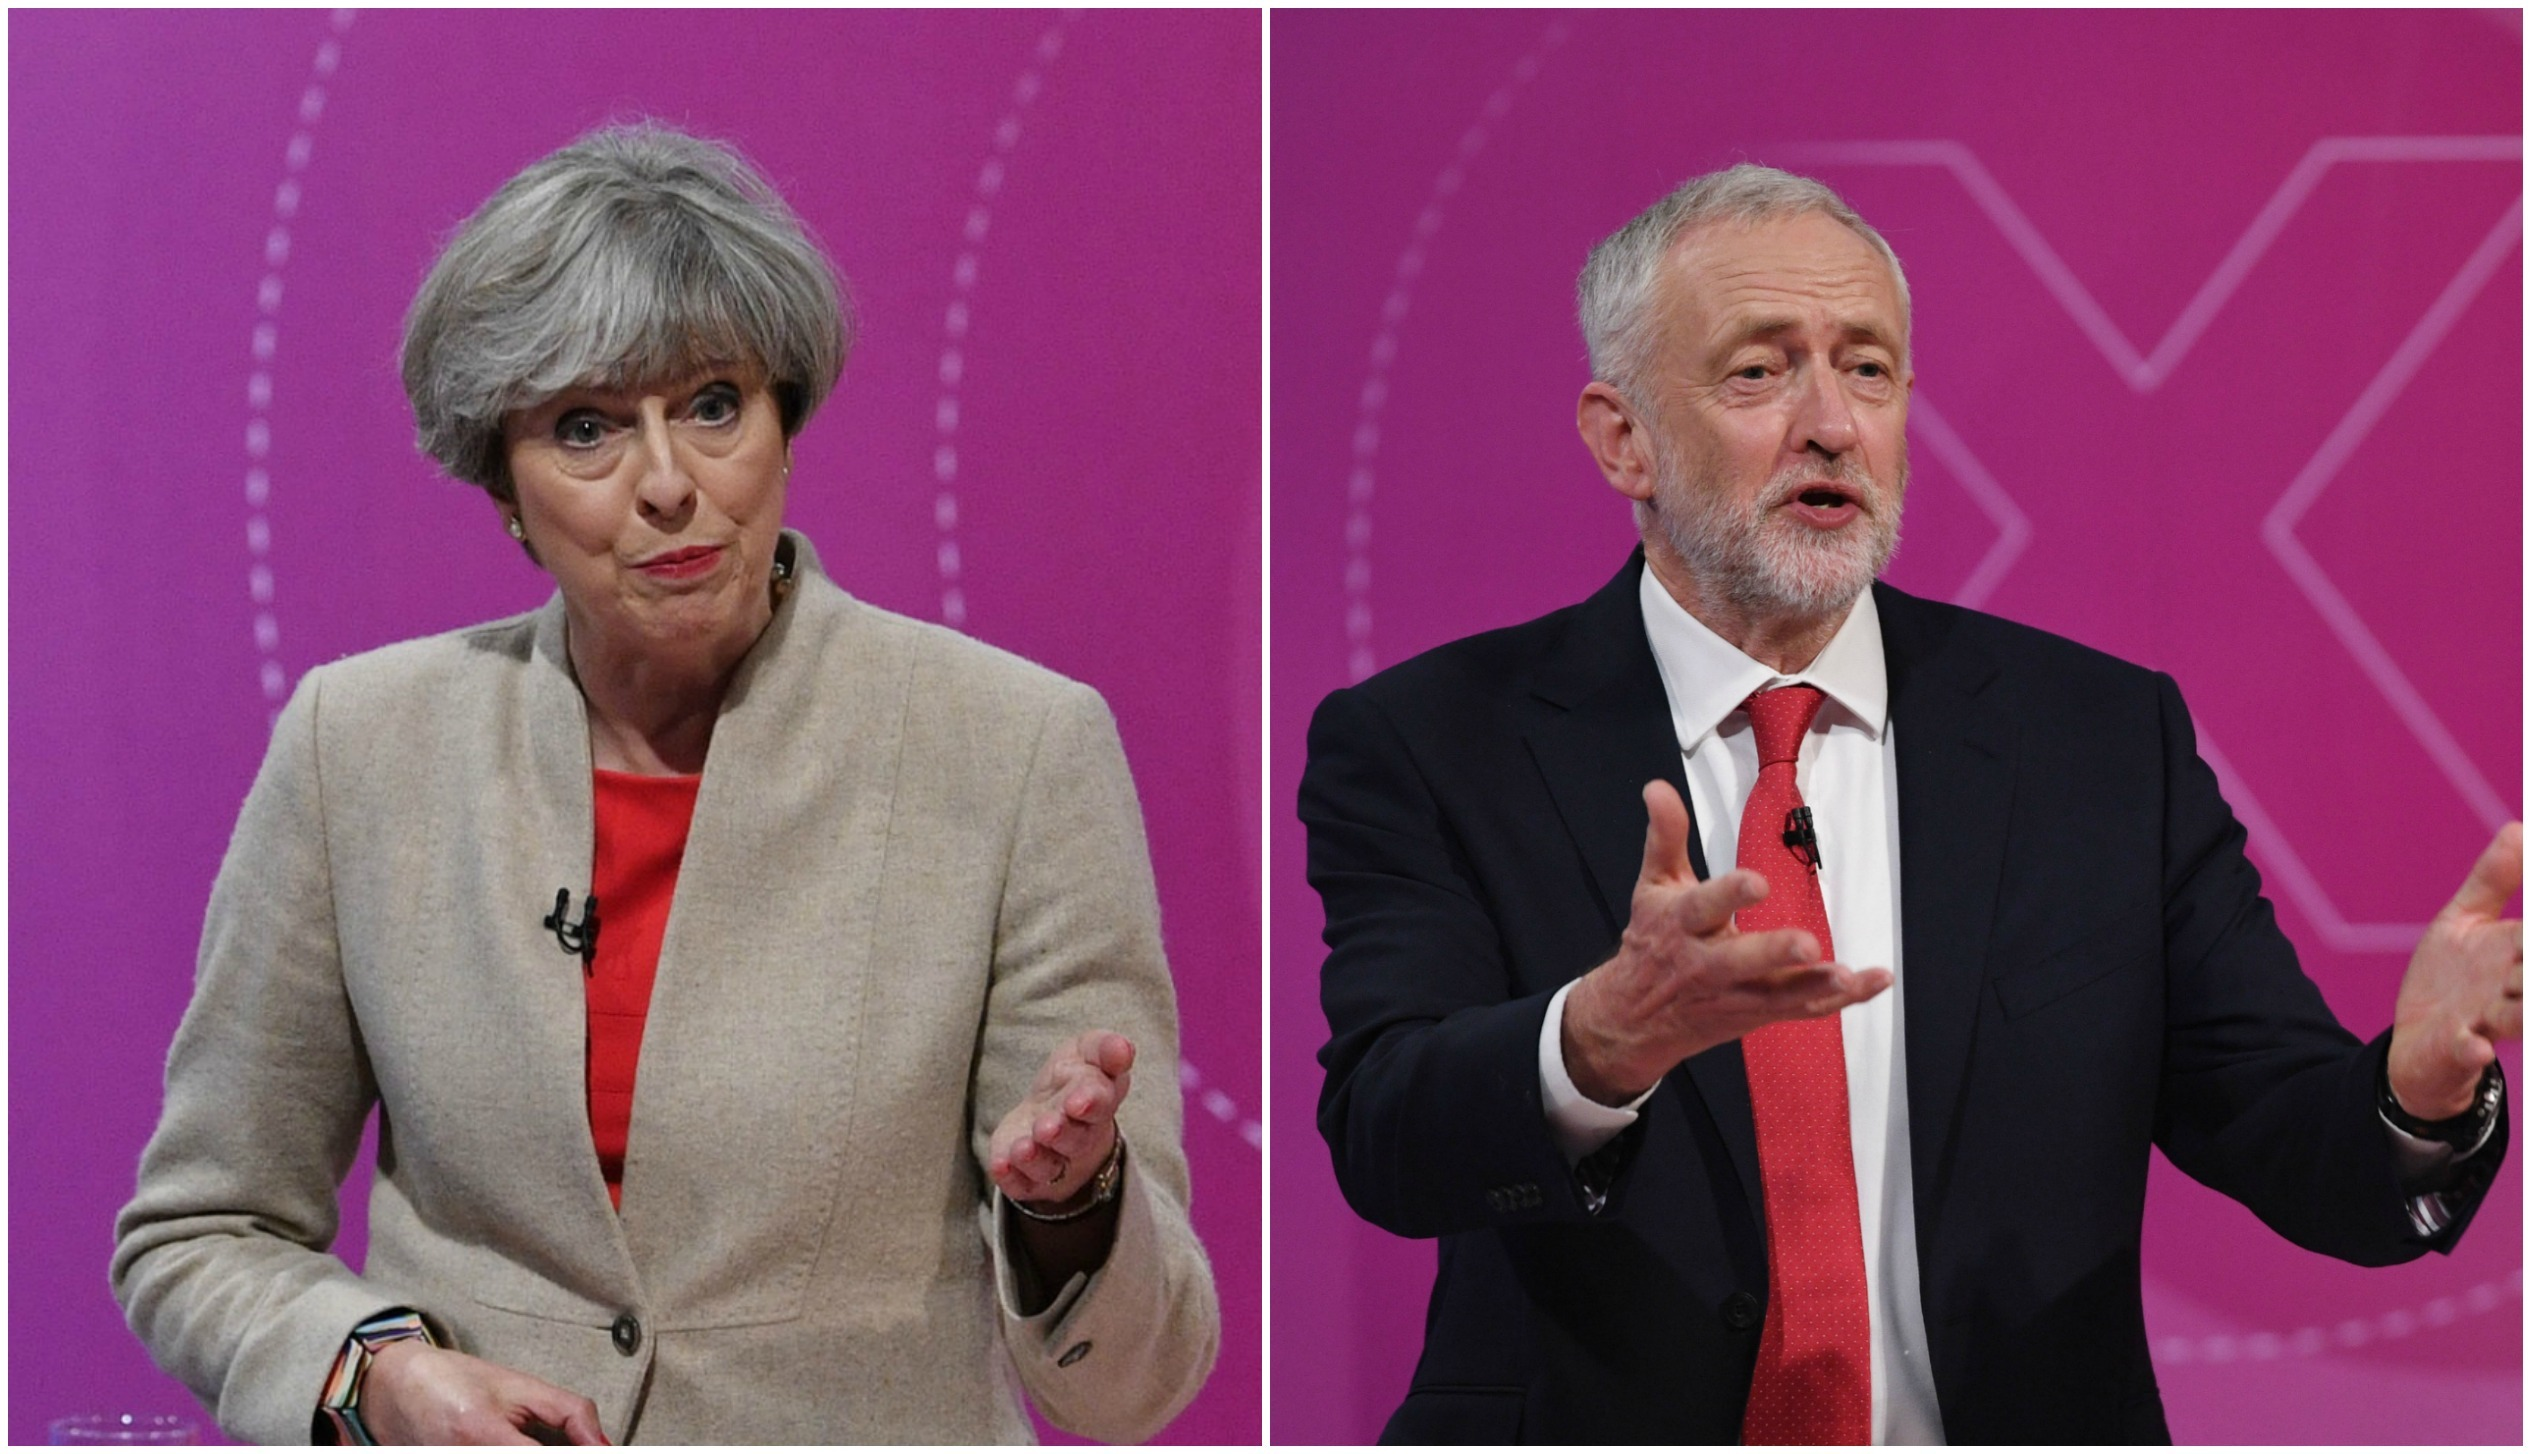 May and Corbyn faced a TV audience last night (BBC)